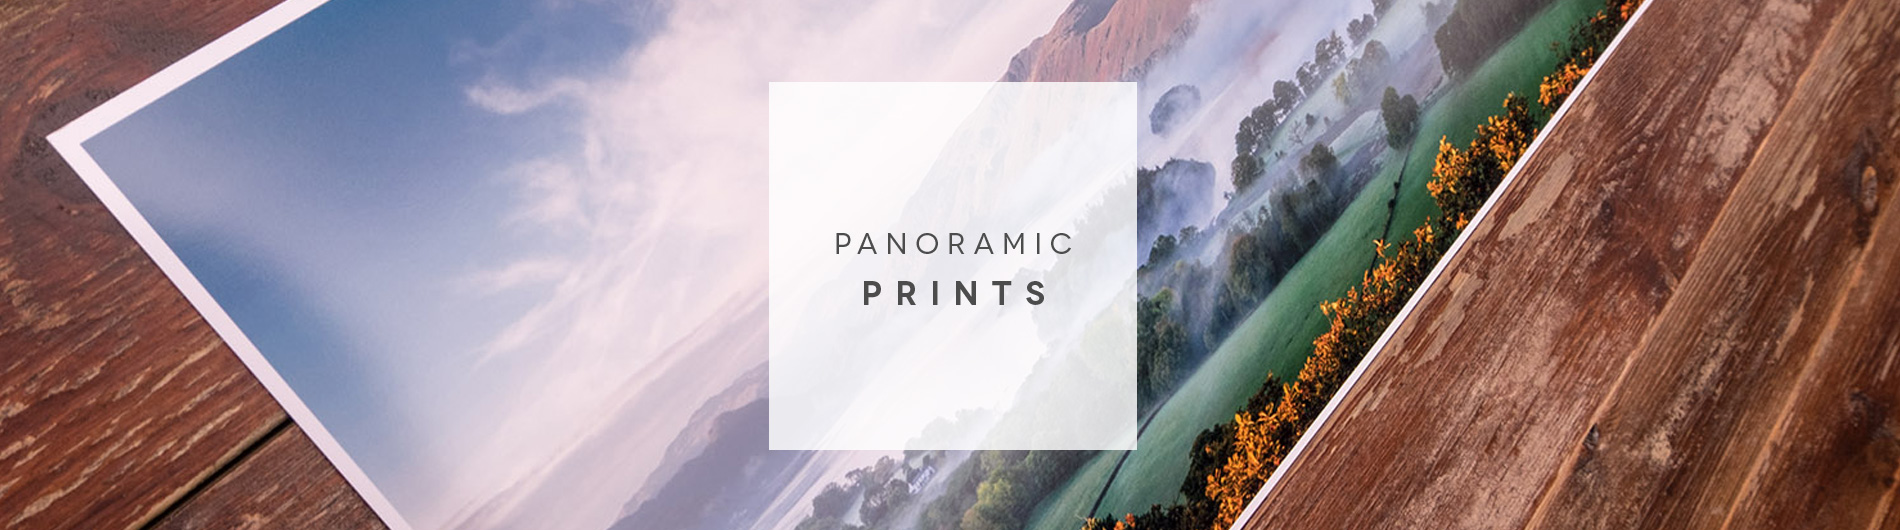 panoramic prints digitalab